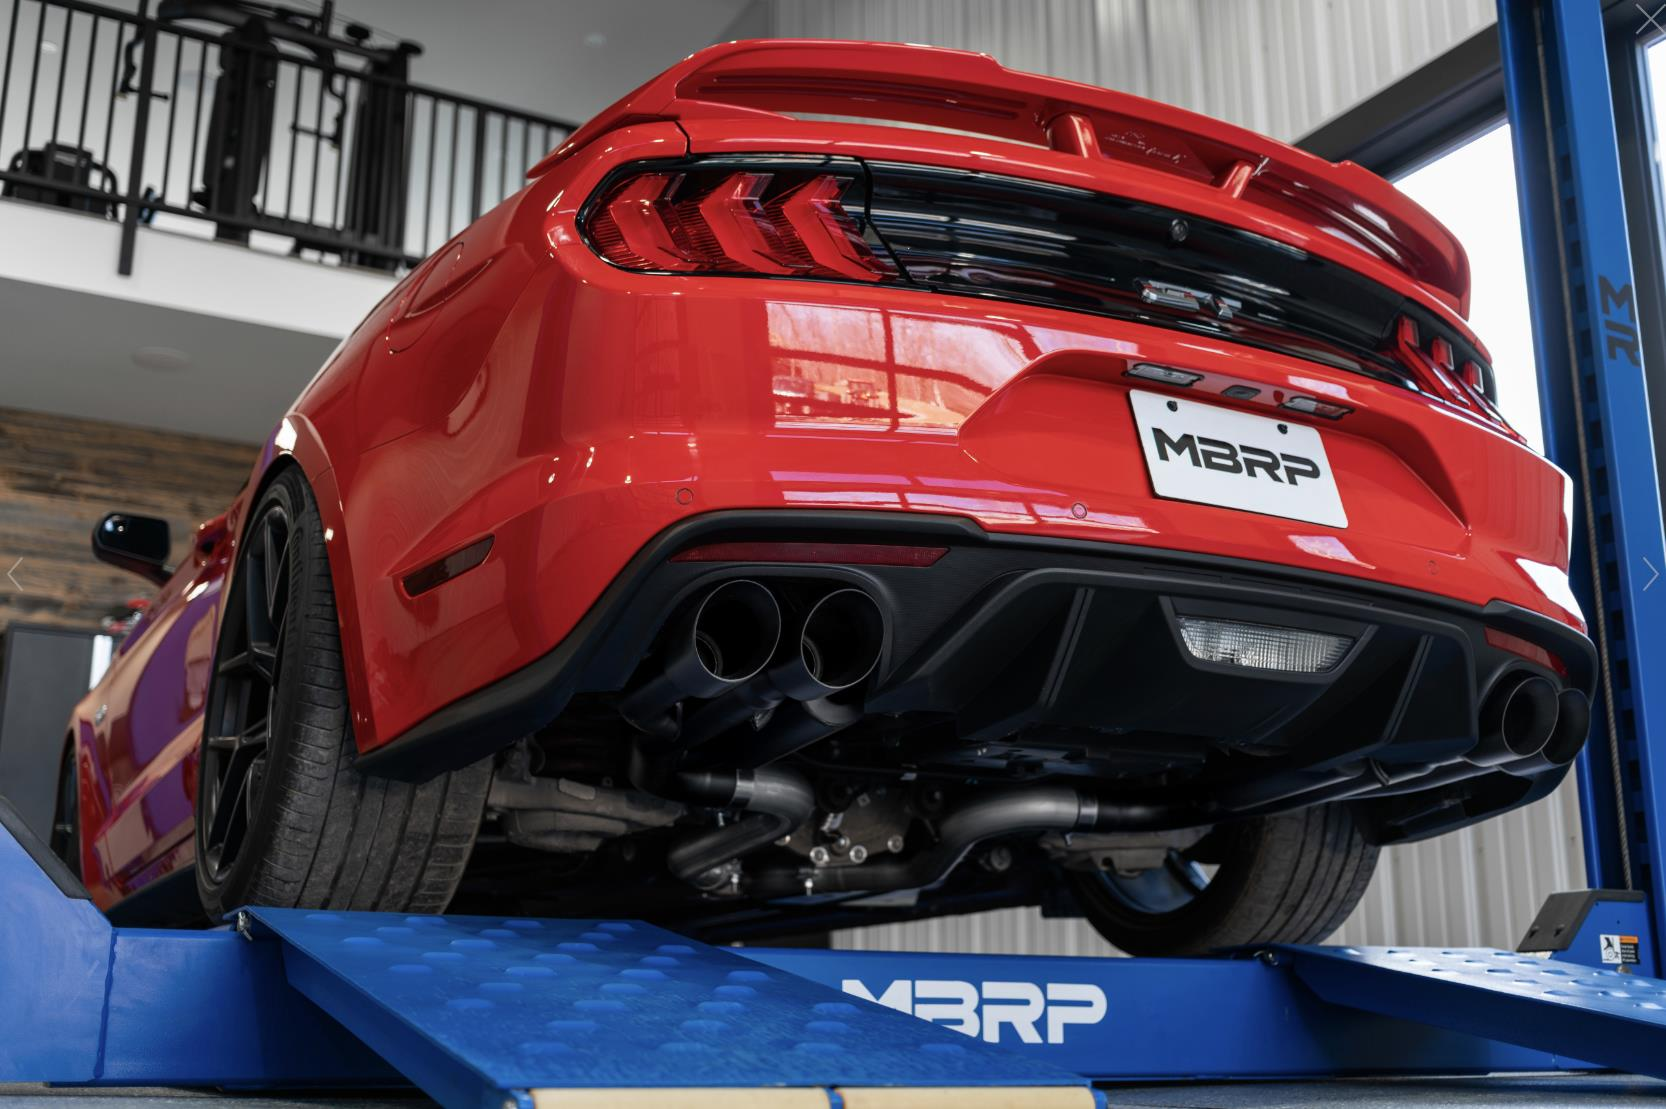 mbrp 2018 2021 ford mustang gt 3 cat back aluminized dual quad split rear exit exhaust with 4 dual wall tips black series